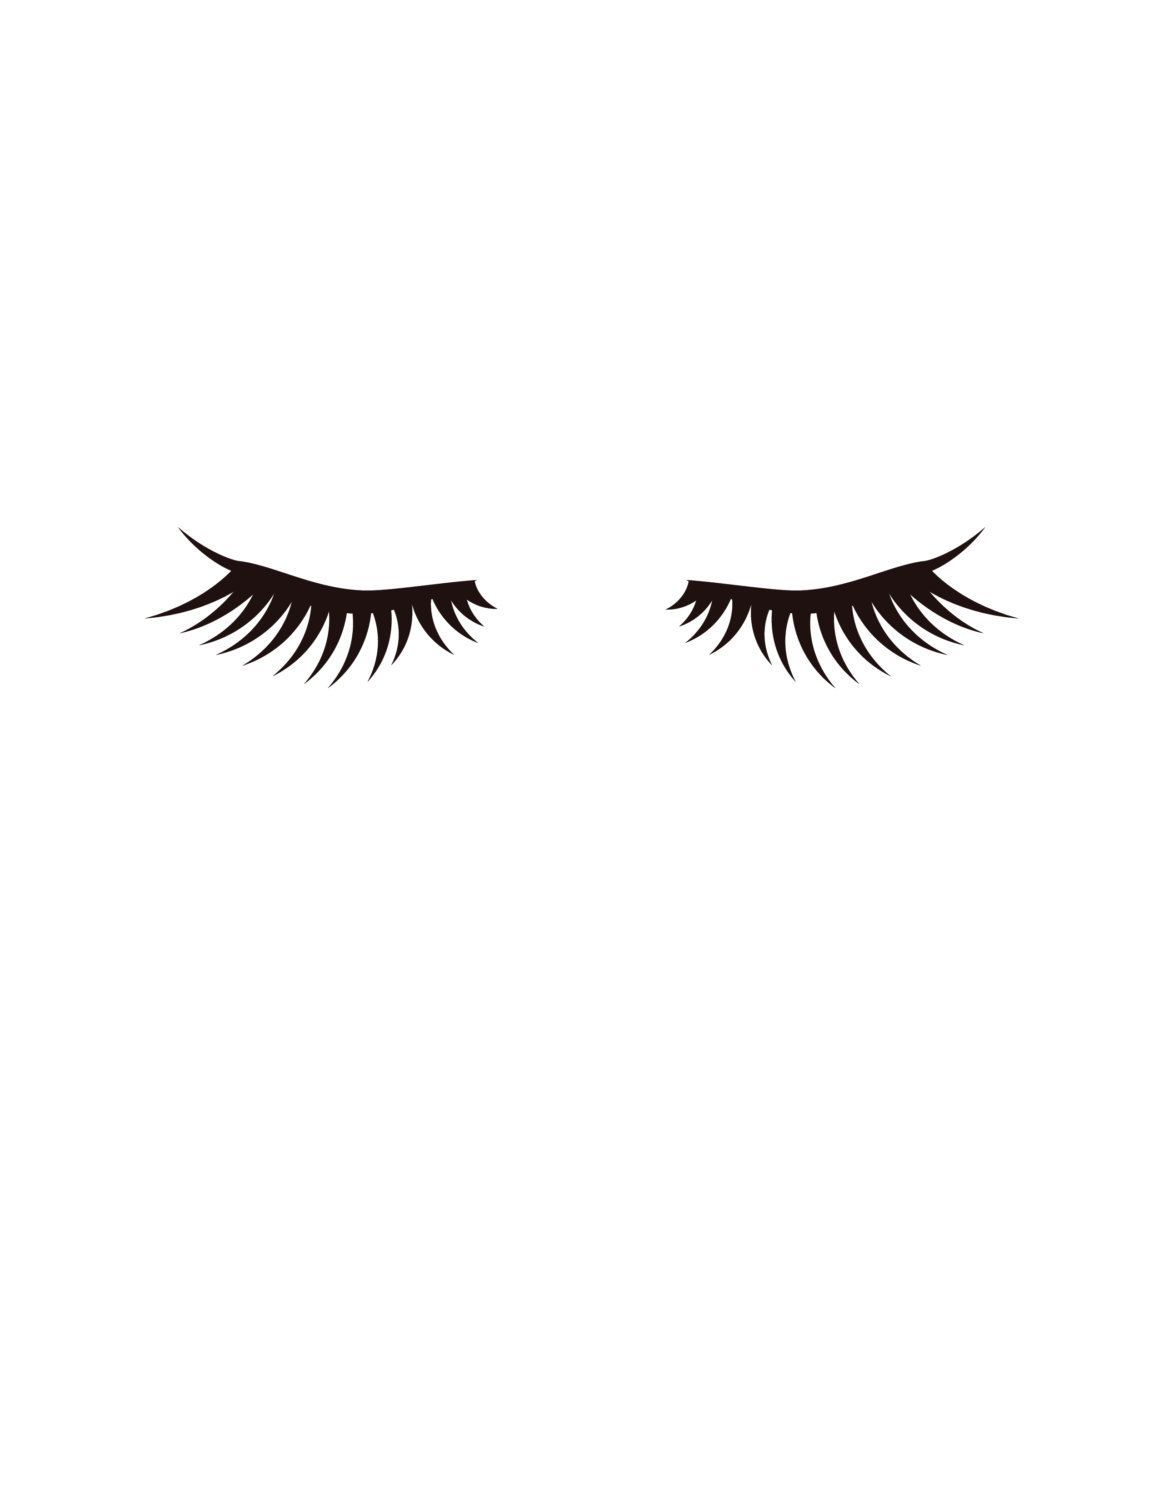 Answering all your lash extension questions!